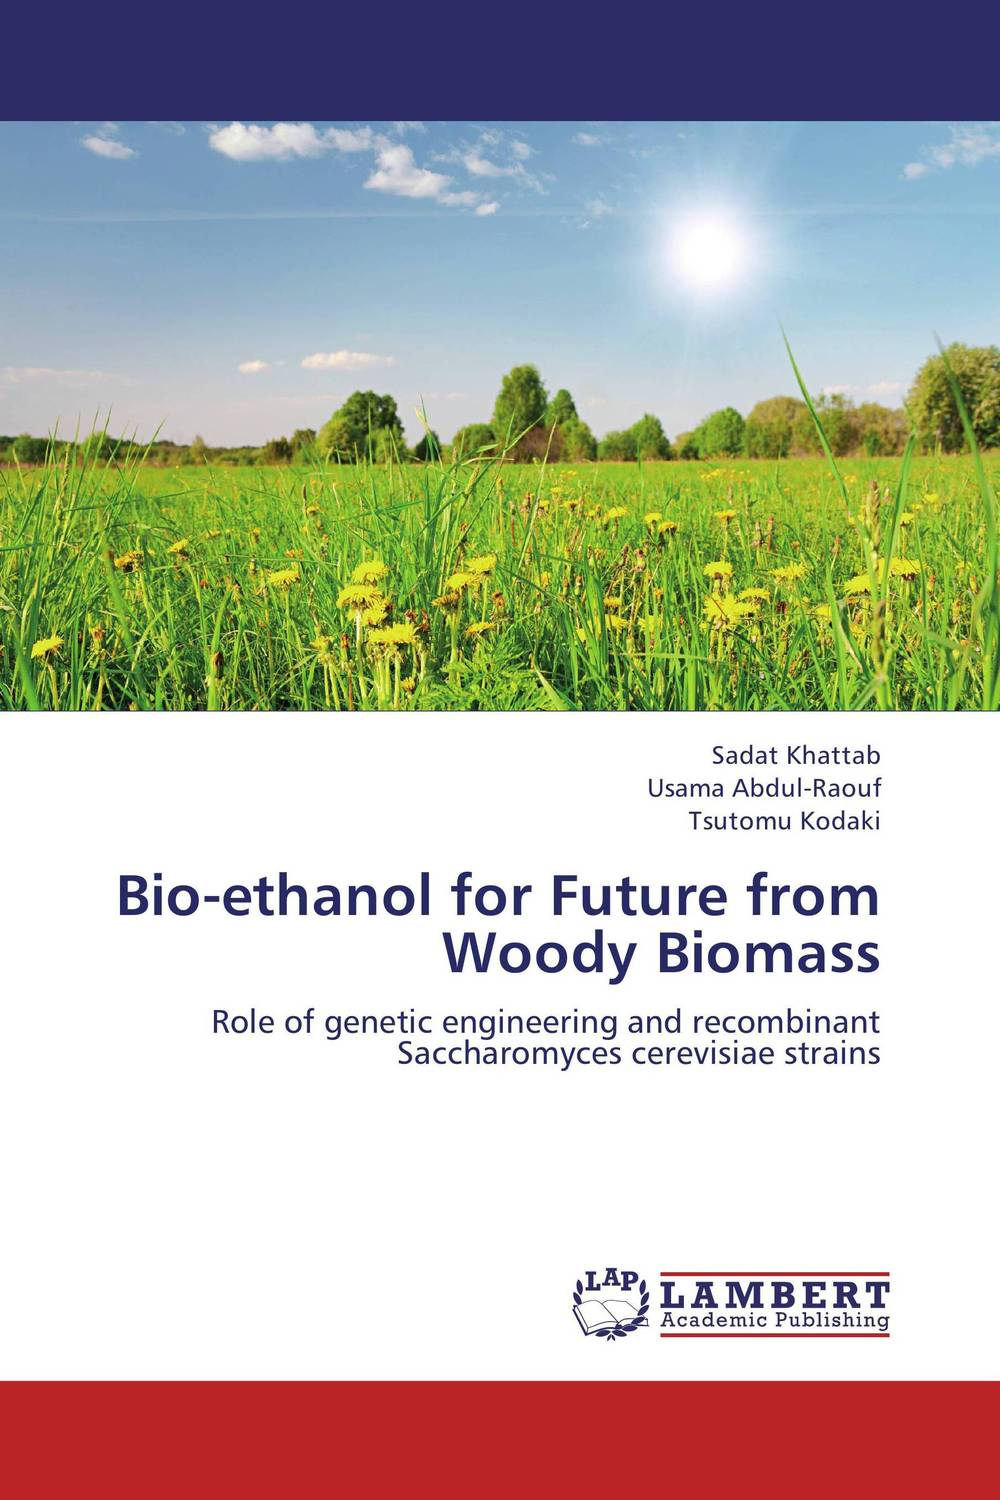 Bio-ethanol for Future from Woody Biomass peter forbes gecko s foot – bio–inspiration engineering new materials from nature